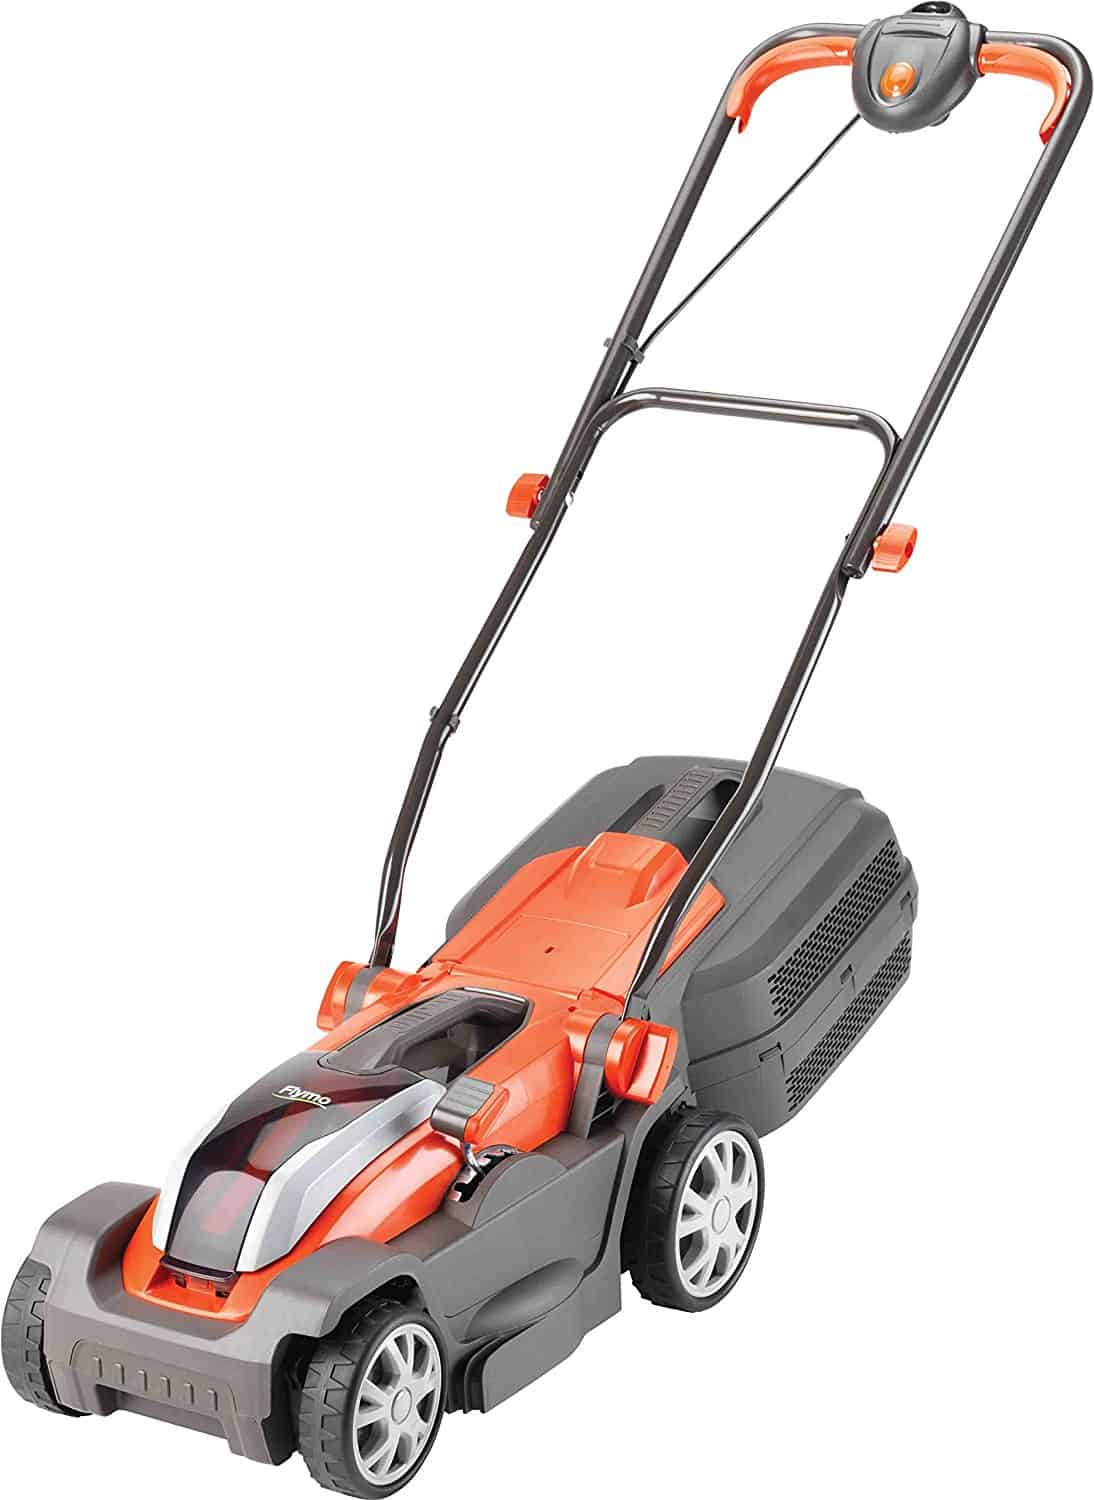 Best Cordless Lawnmower for the money – Flymo